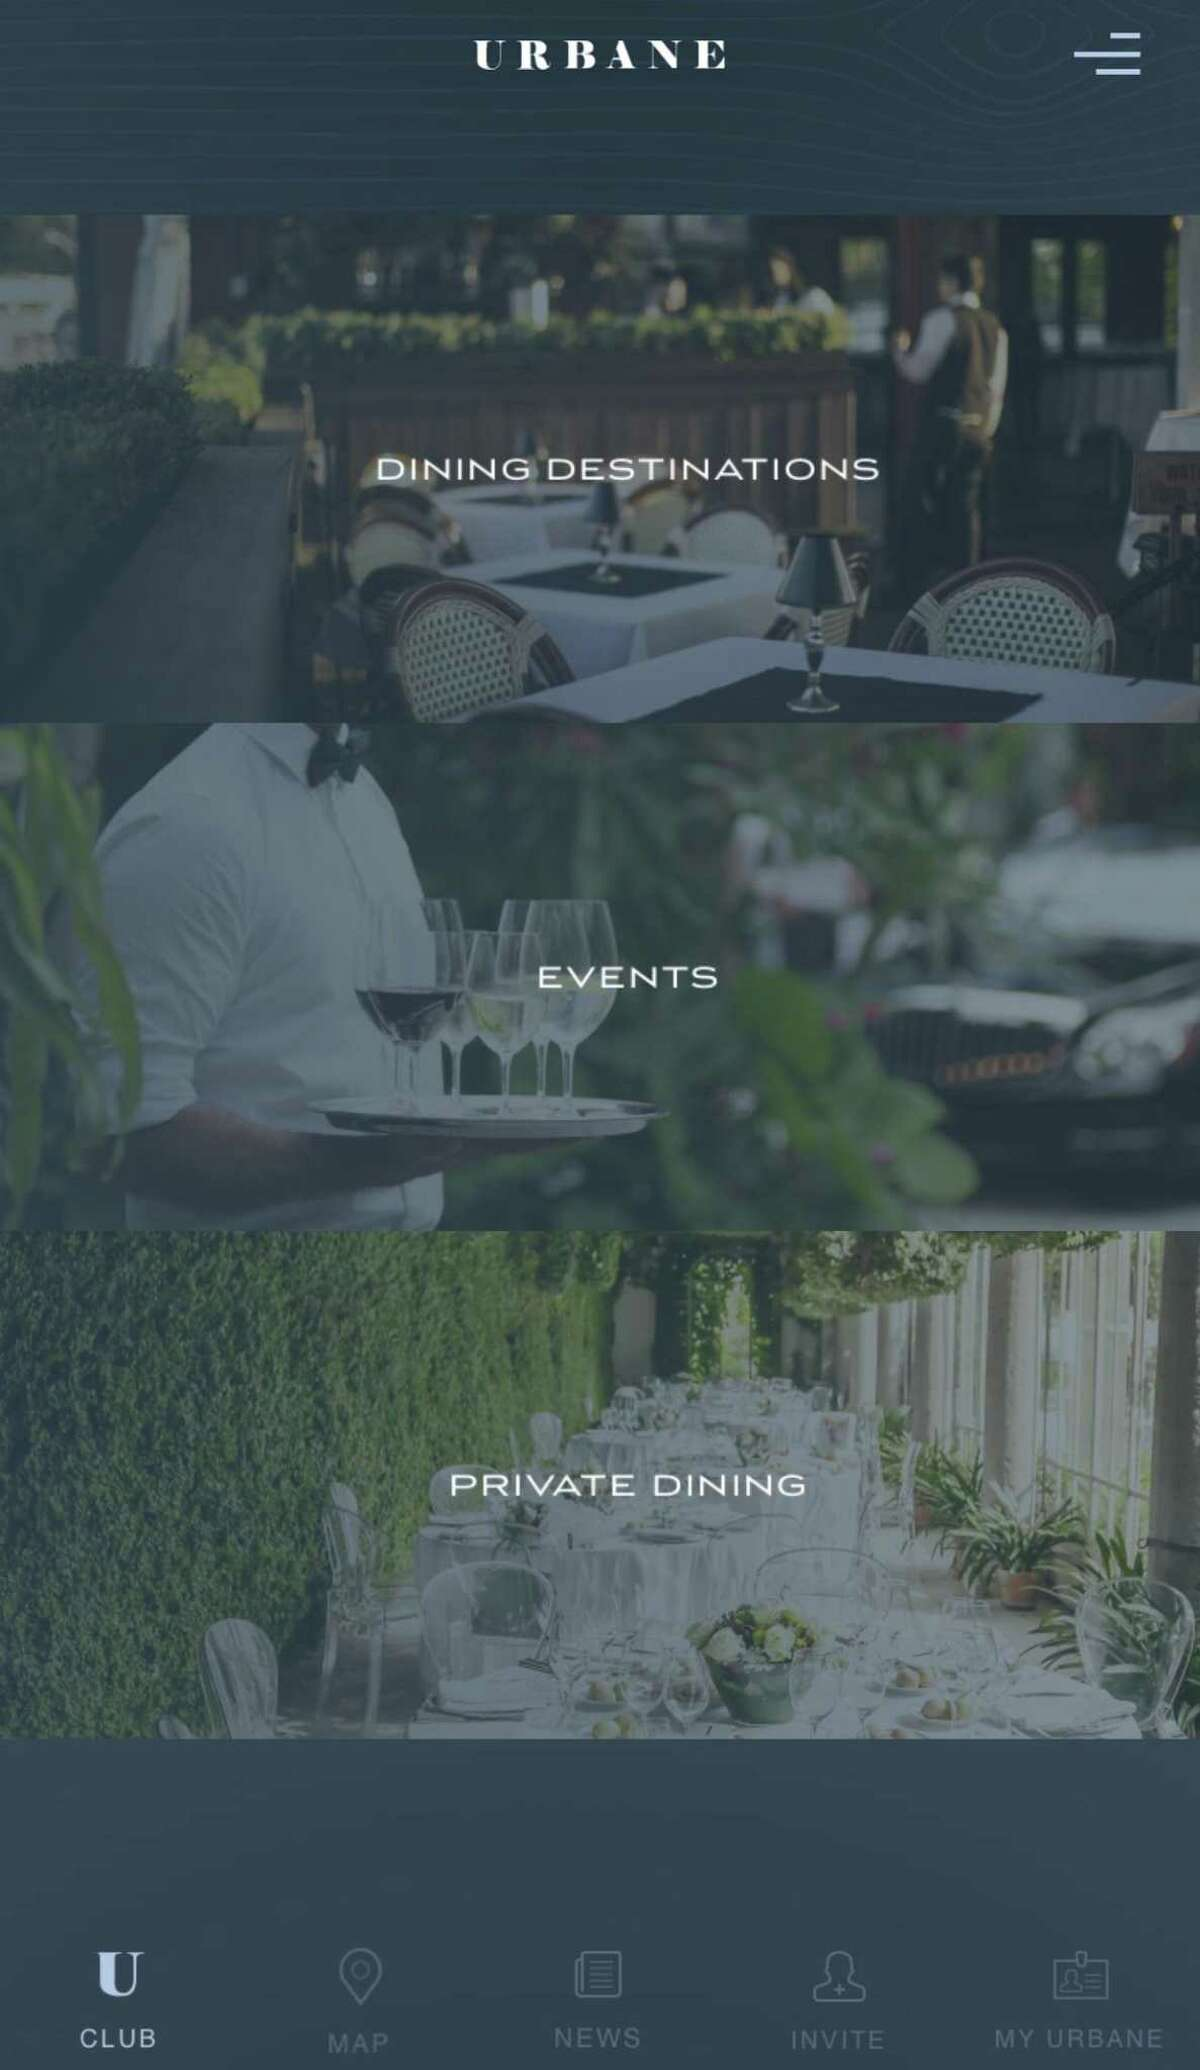 The Urbane Society is a members-only club for young professionals aged 21 to 34 who are interested in experiencing premium fine dining at an affordable rate.